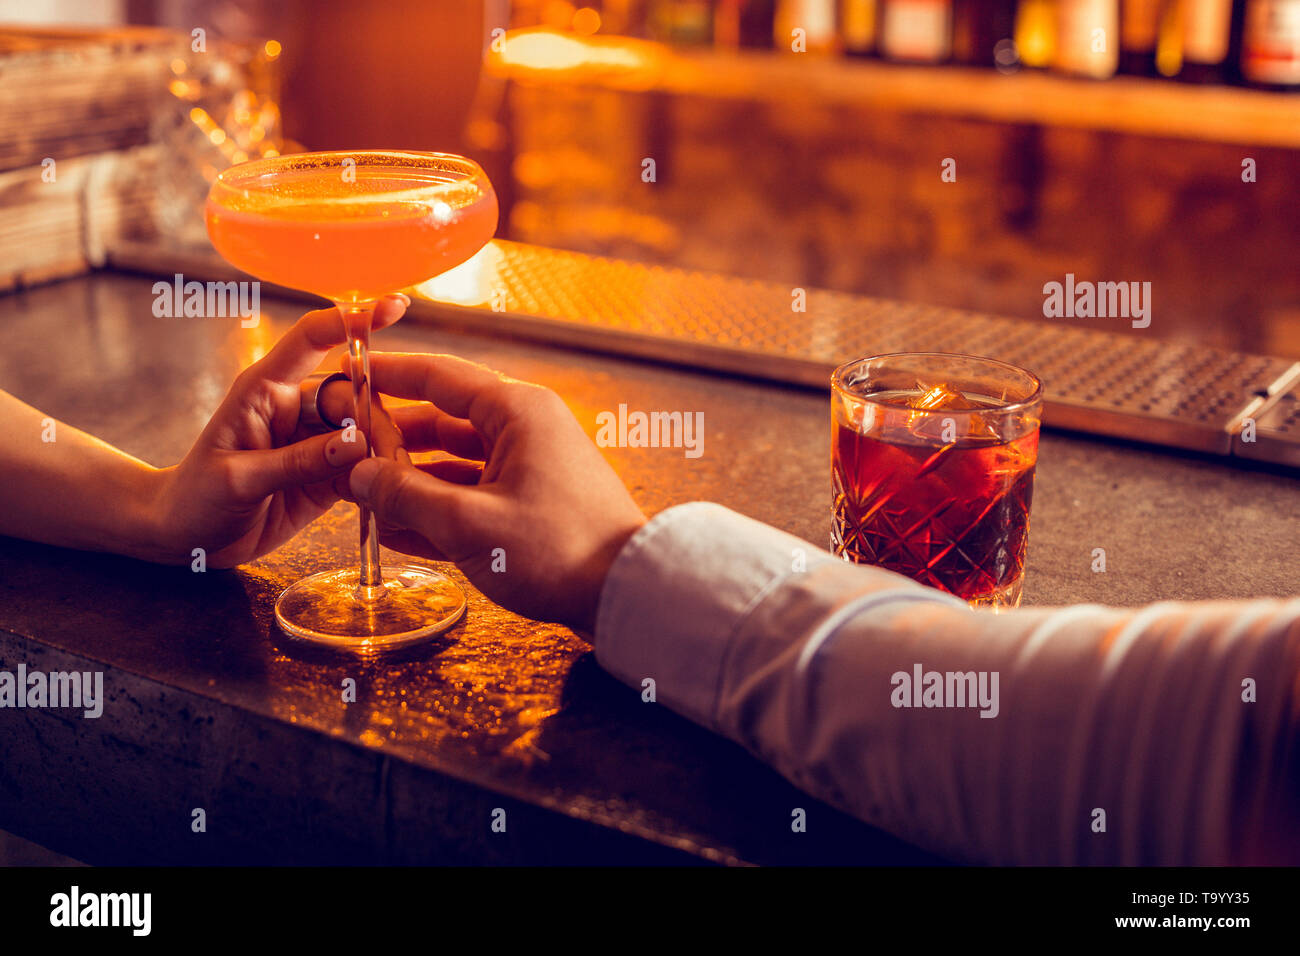 Caring boyfriend giving alcohol cocktail to his woman - Stock Image